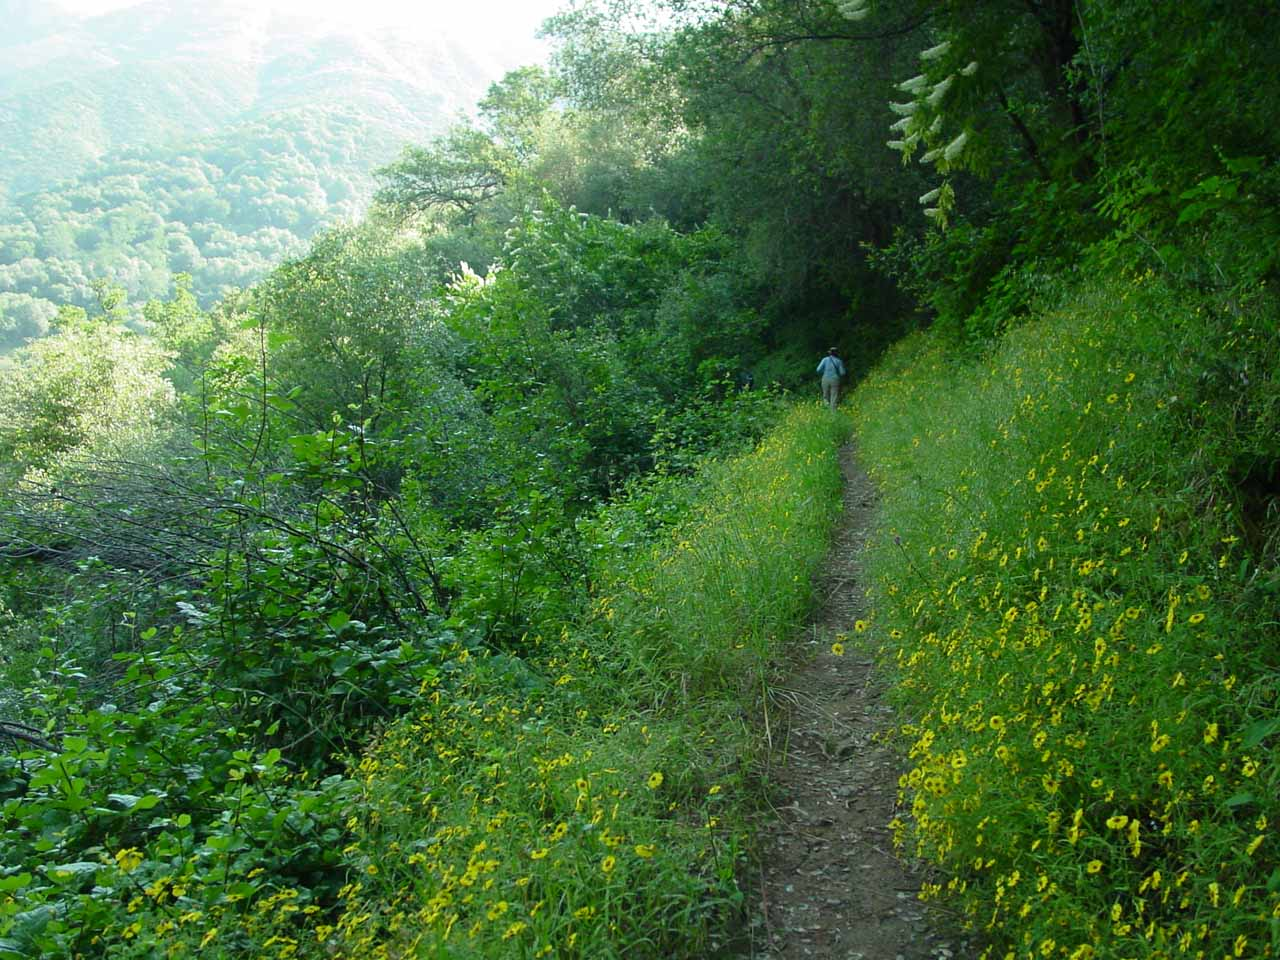 The narrow trail flanked by wildflowers